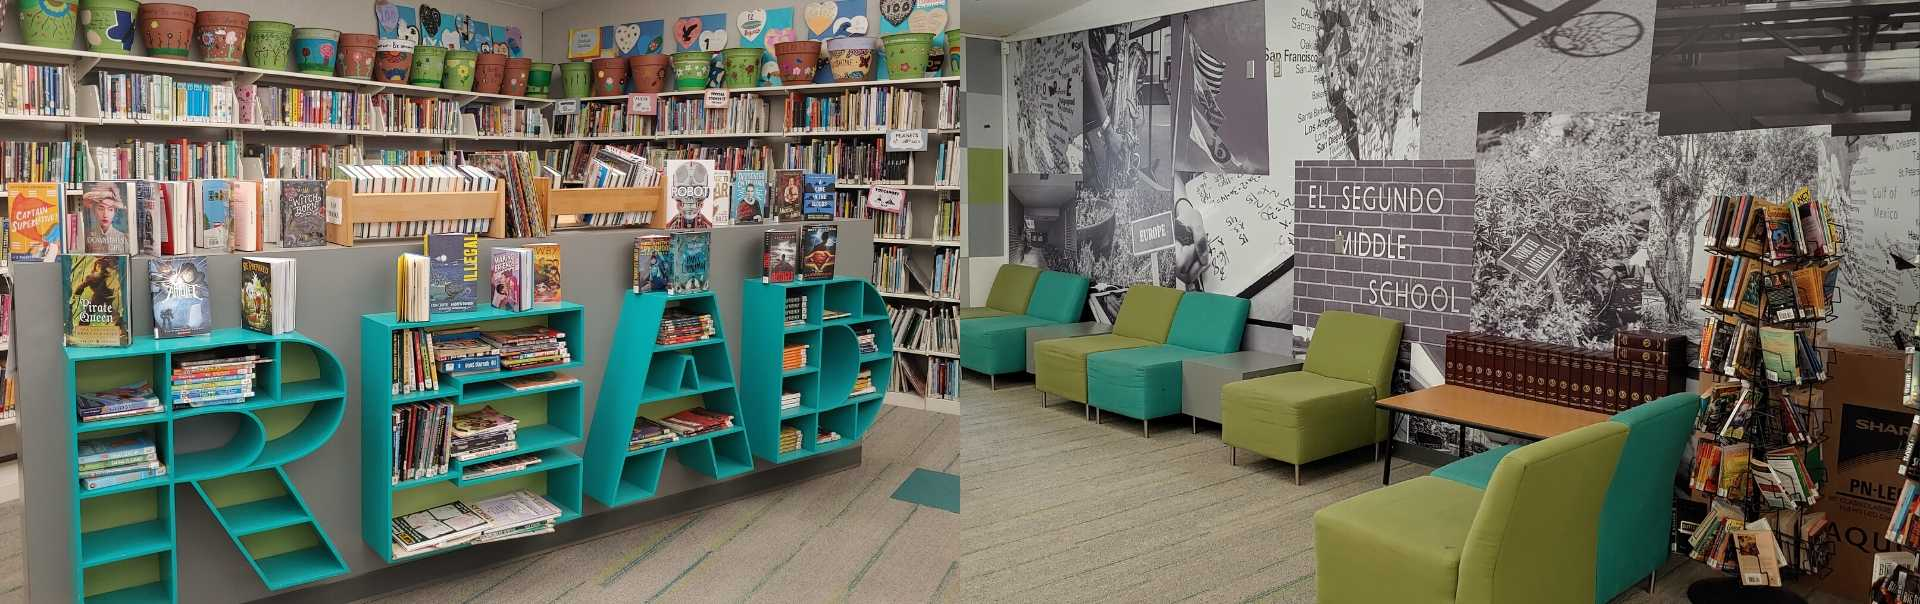 Images of middle school library interior